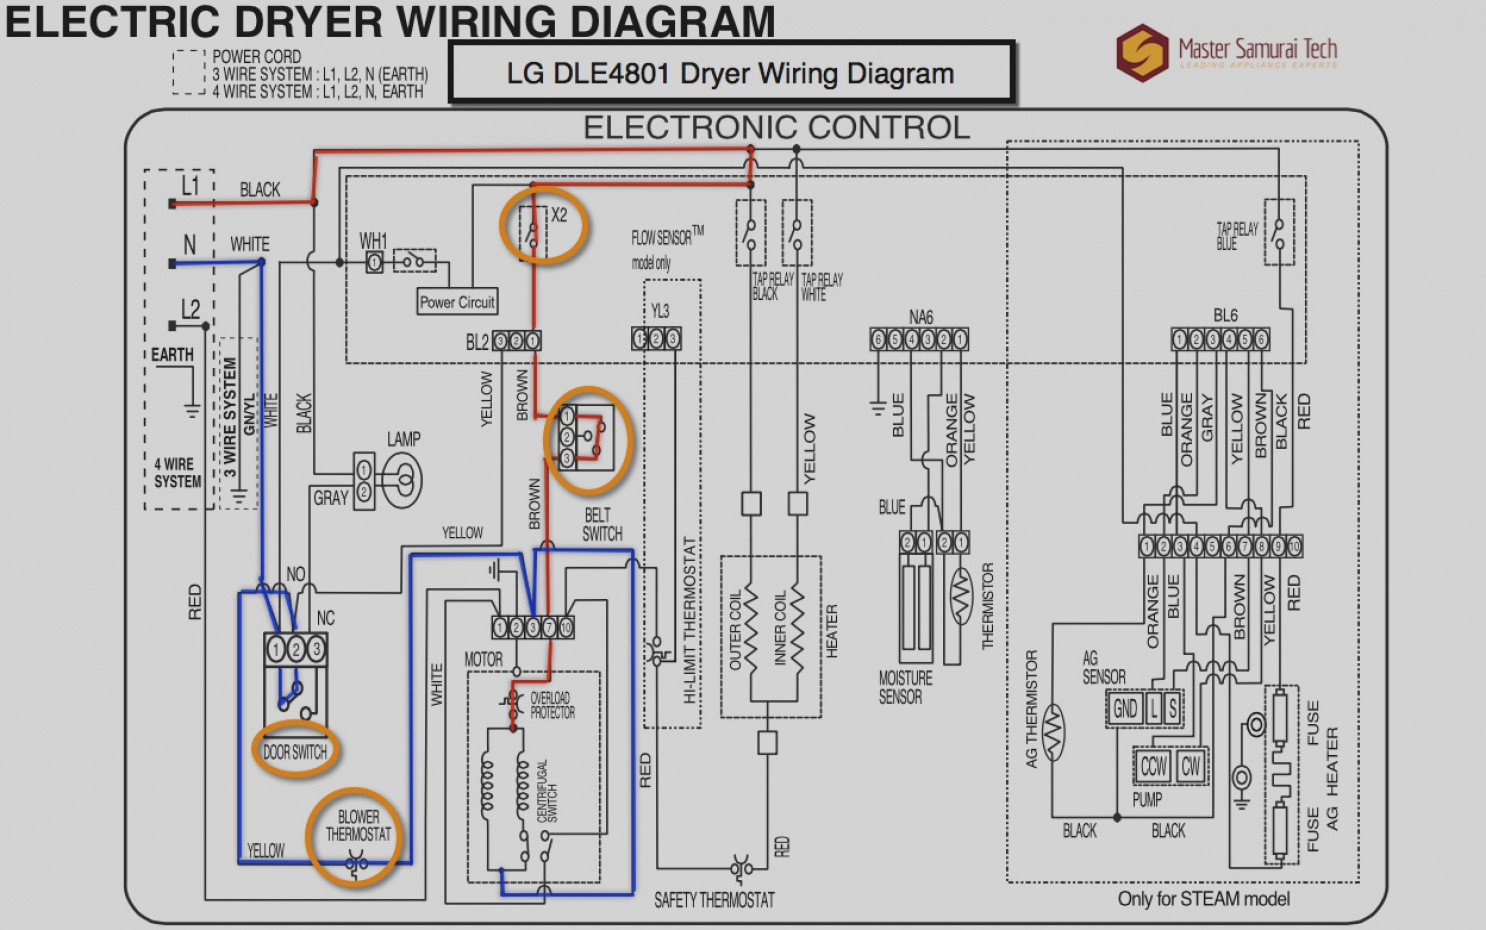 Amazing Estate Whirlpool Dryer Wiring Schematic Diagram For The New And Amana